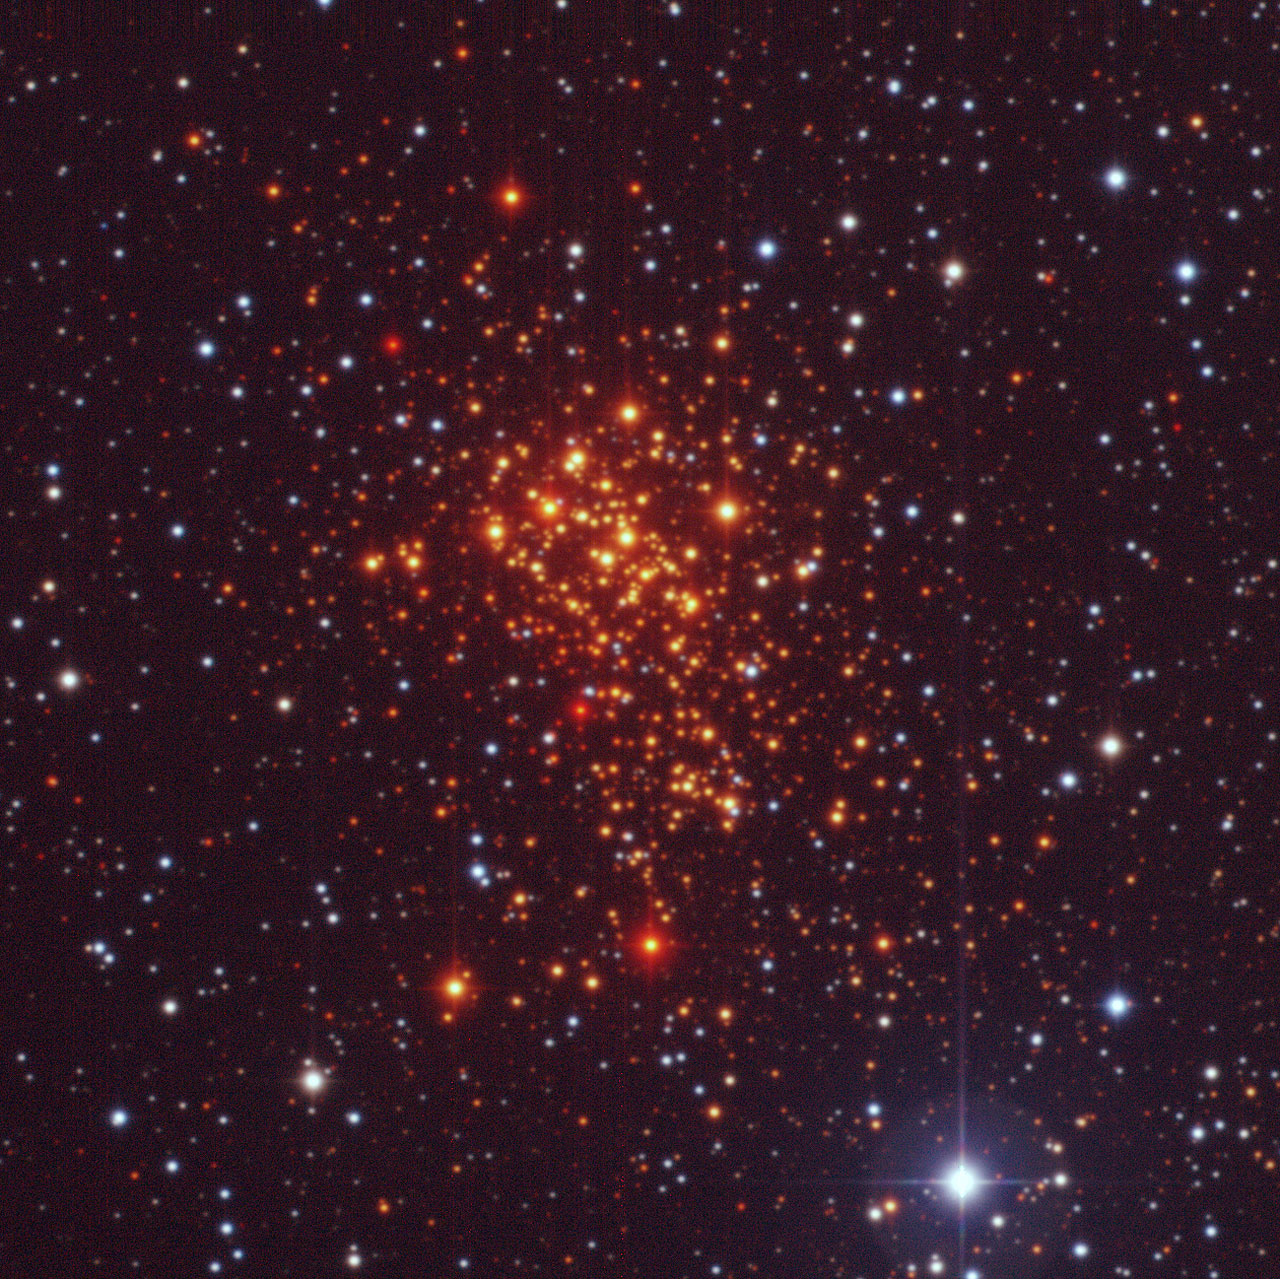 The Super Star Cluster Westerlund 1